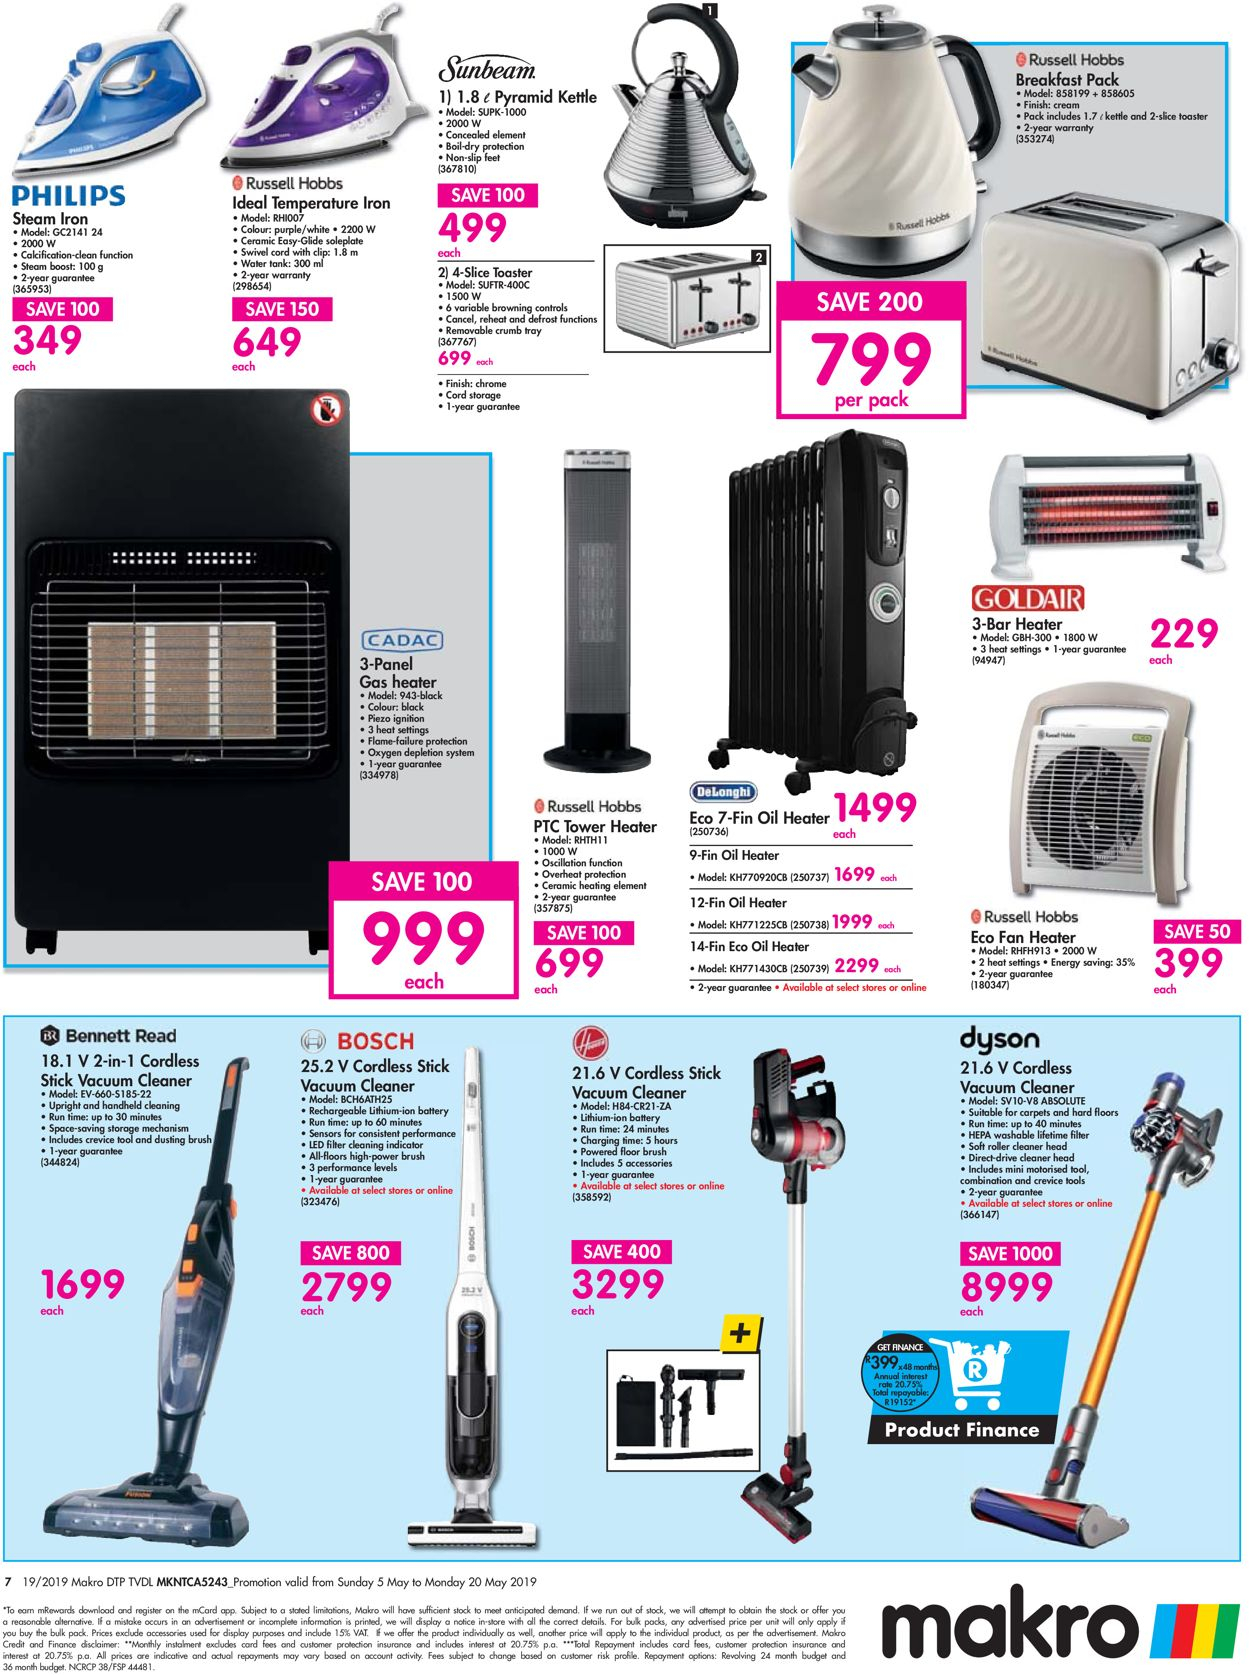 Makro Current Catalogue 20190505 20190520 7 Za with proportions 1250 X 1675